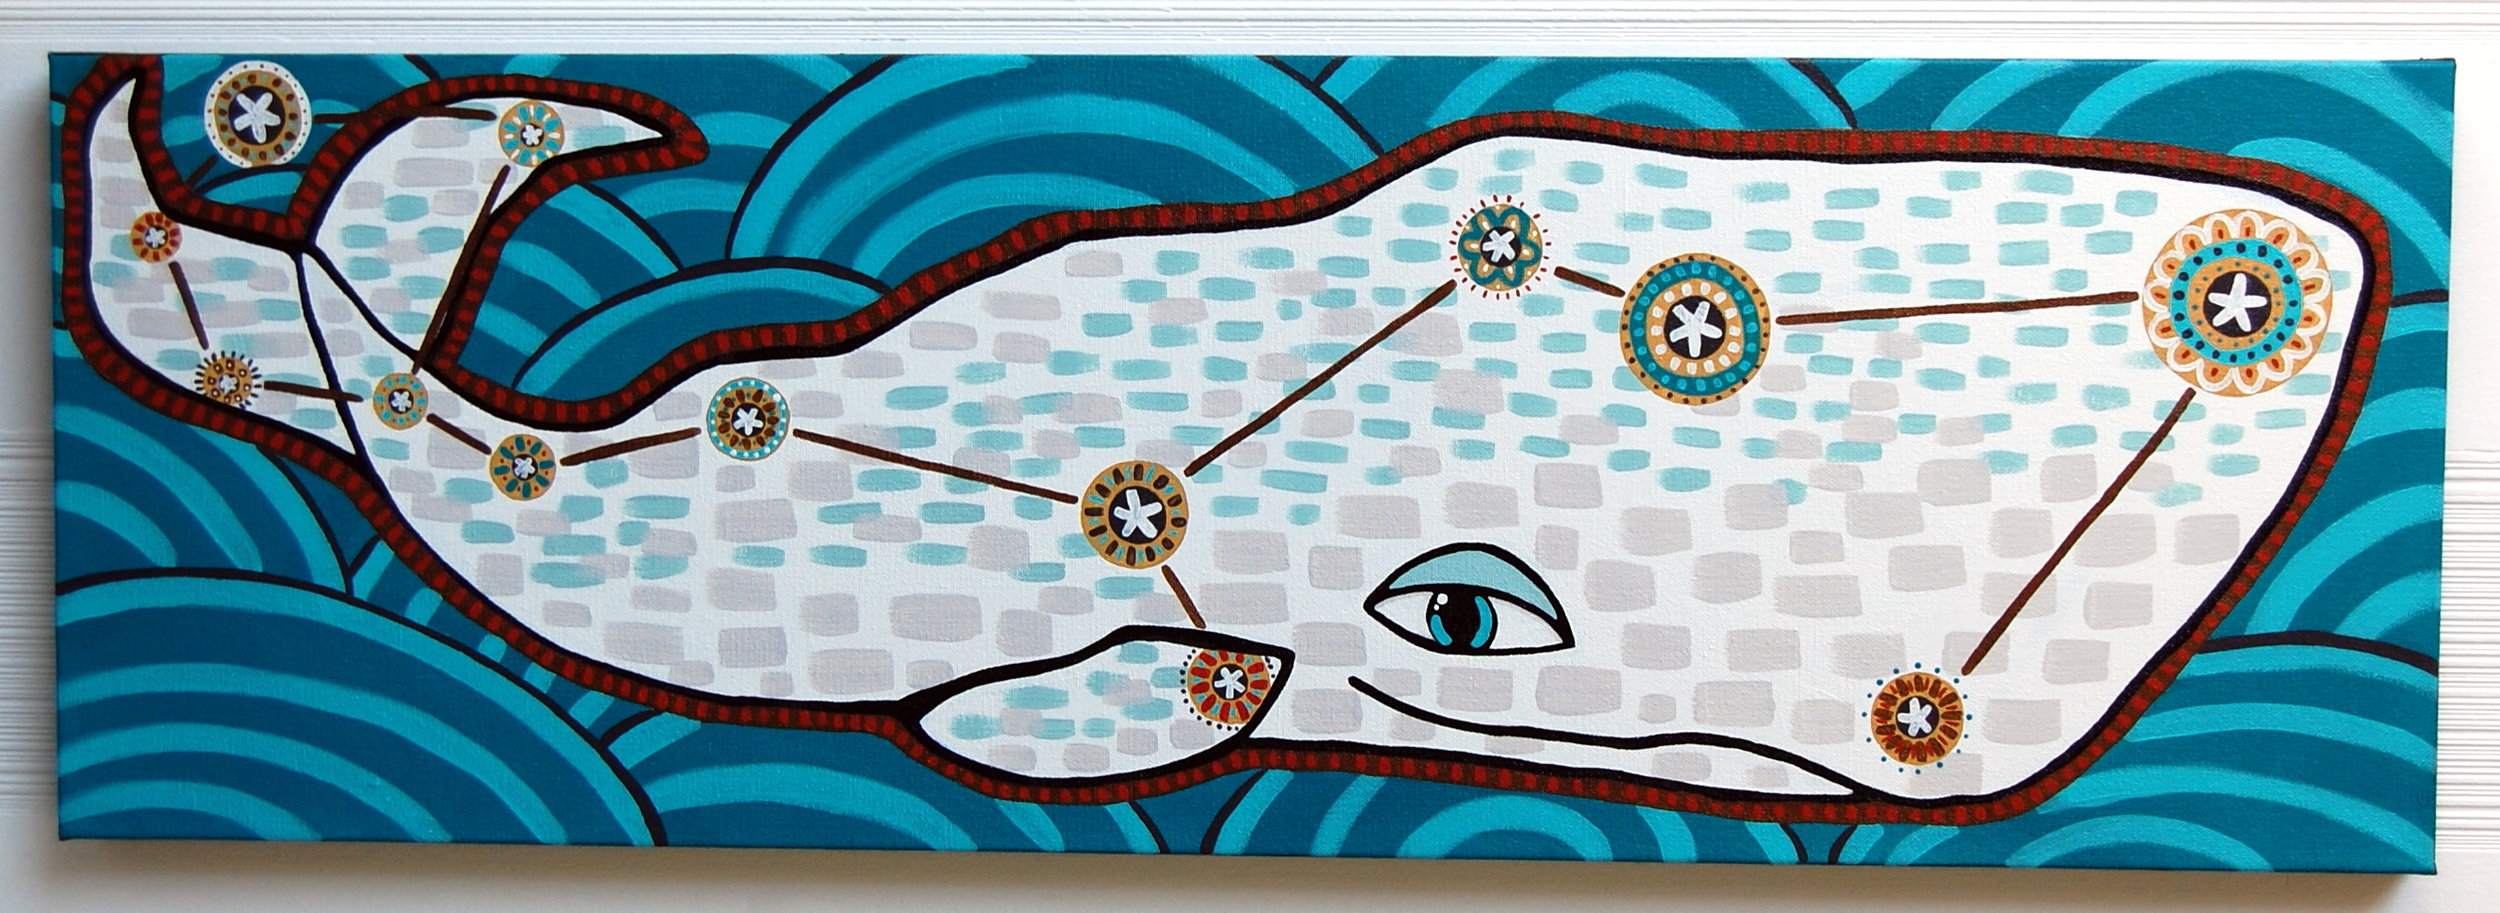 """""""Cetus""""  Acrylic on Canvas 12"""" x 36"""" // SOLD"""